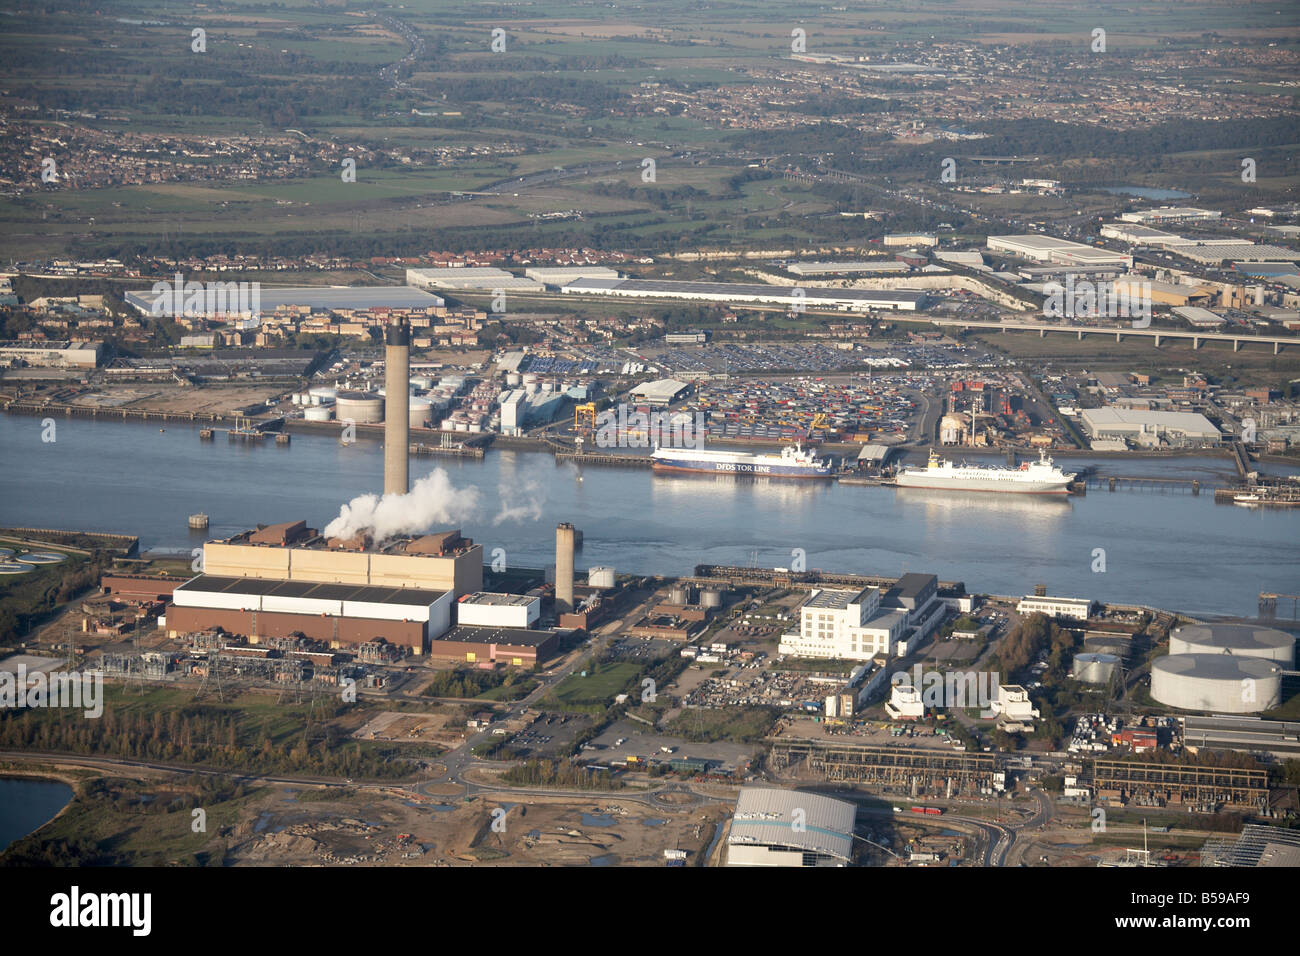 Aerial view north east of River Thames Littlebrook Business Centre power station gas works Purfleet Deep Wharf London - Stock Image